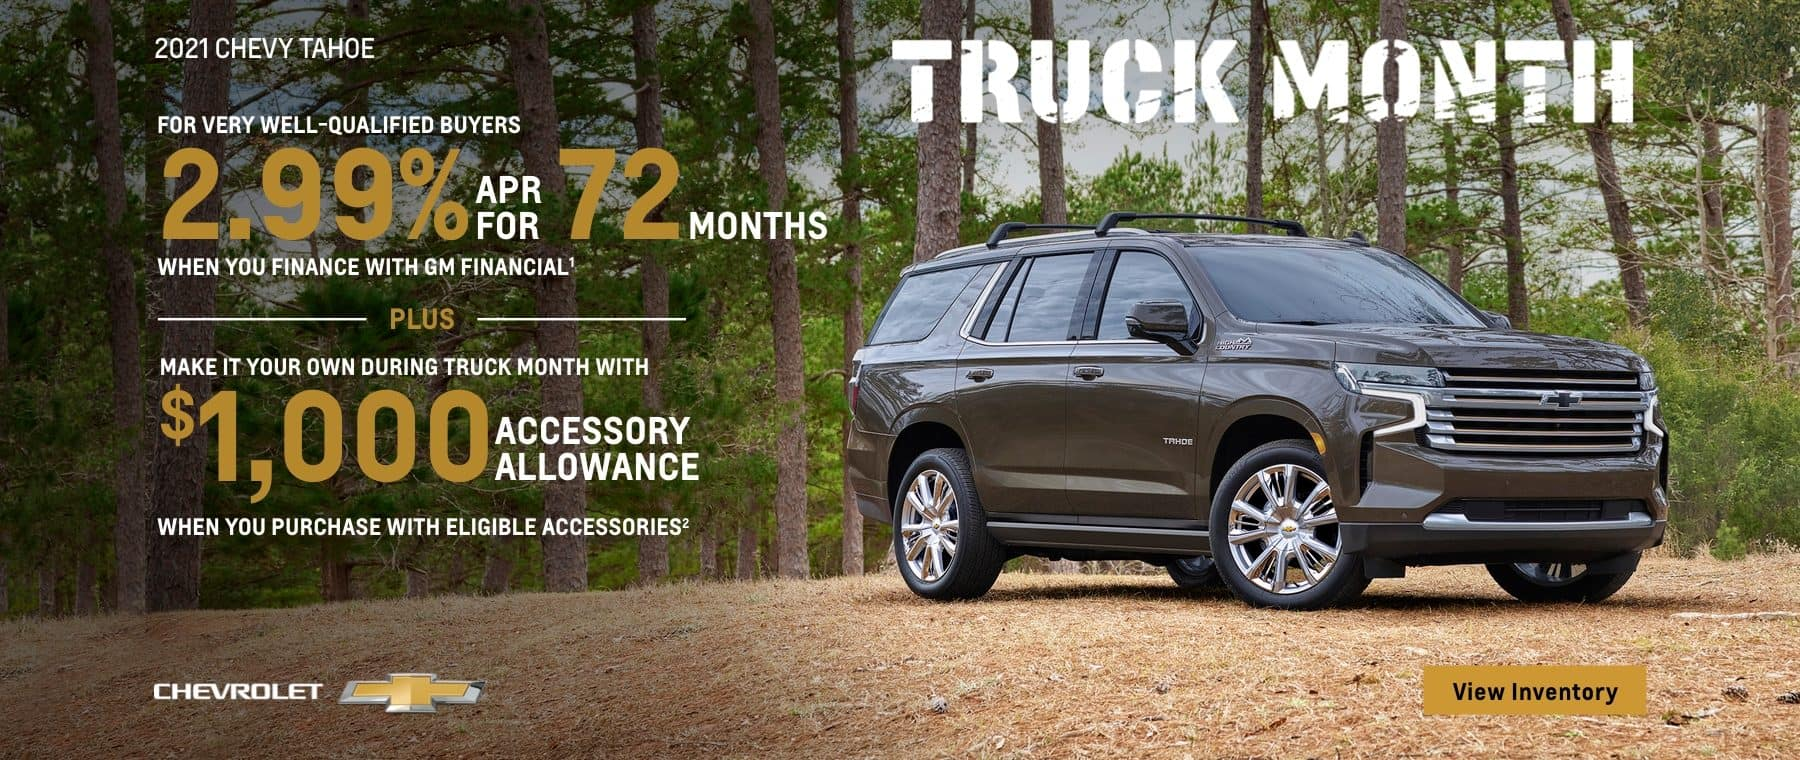 2021 CHEVY TAHOE TRUCK MONTH OFFERS